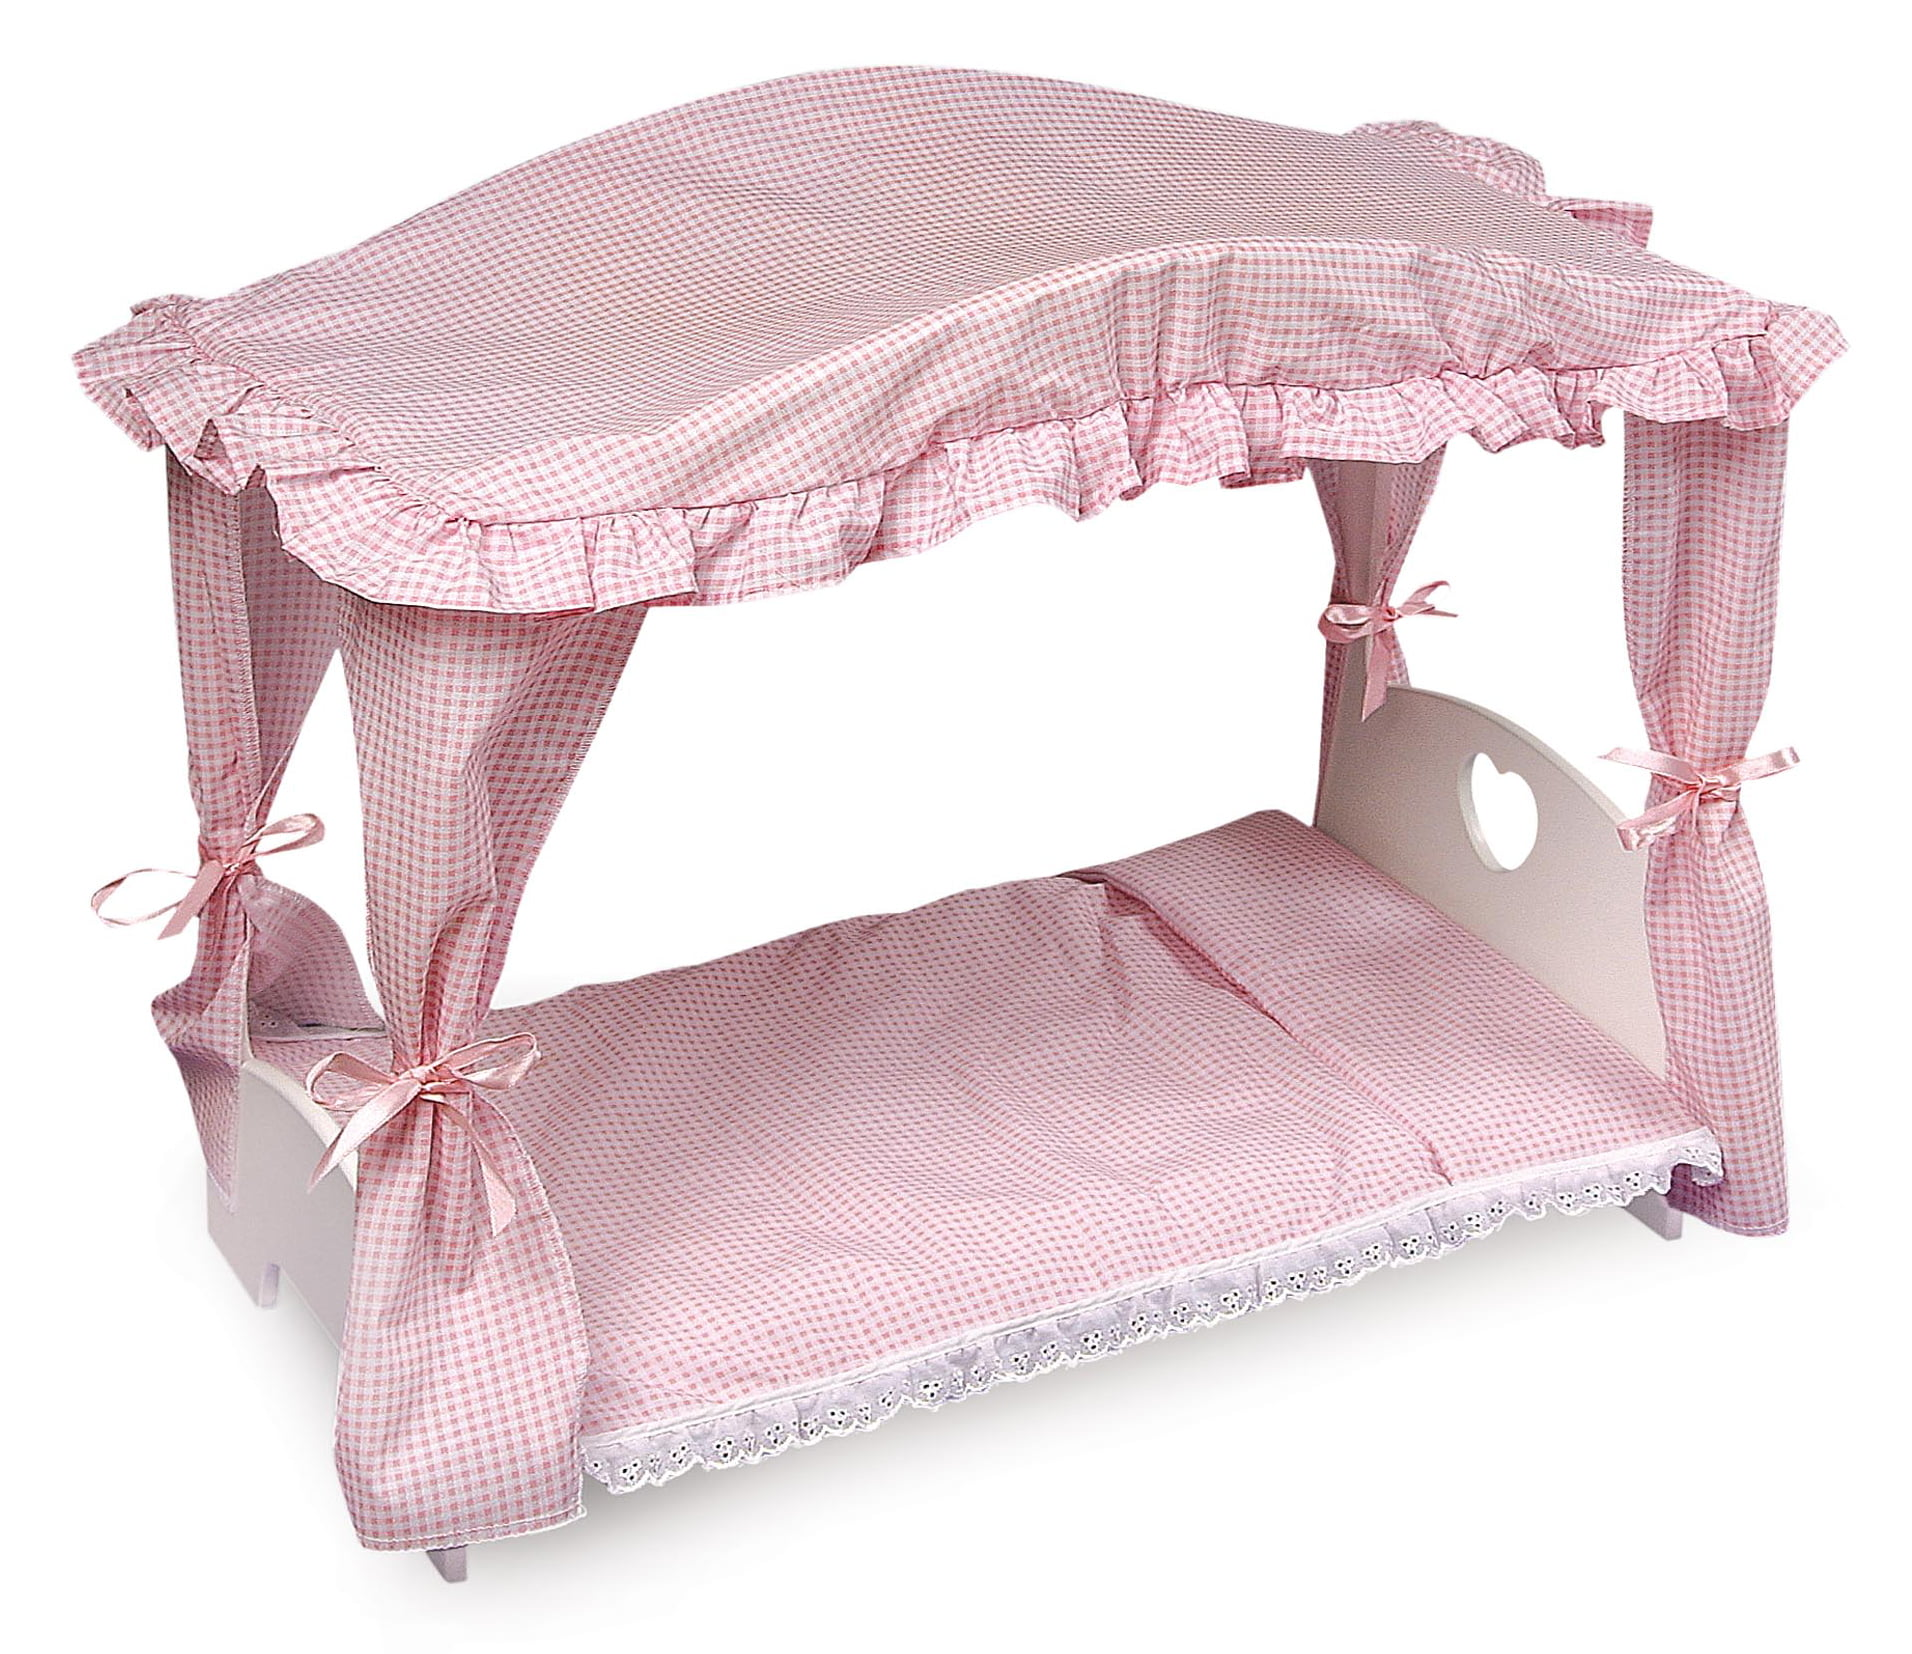 Badger Basket Canopy Doll Bed with Bedding White Pink Fits American Girl, My Life As &... by Badger Basket